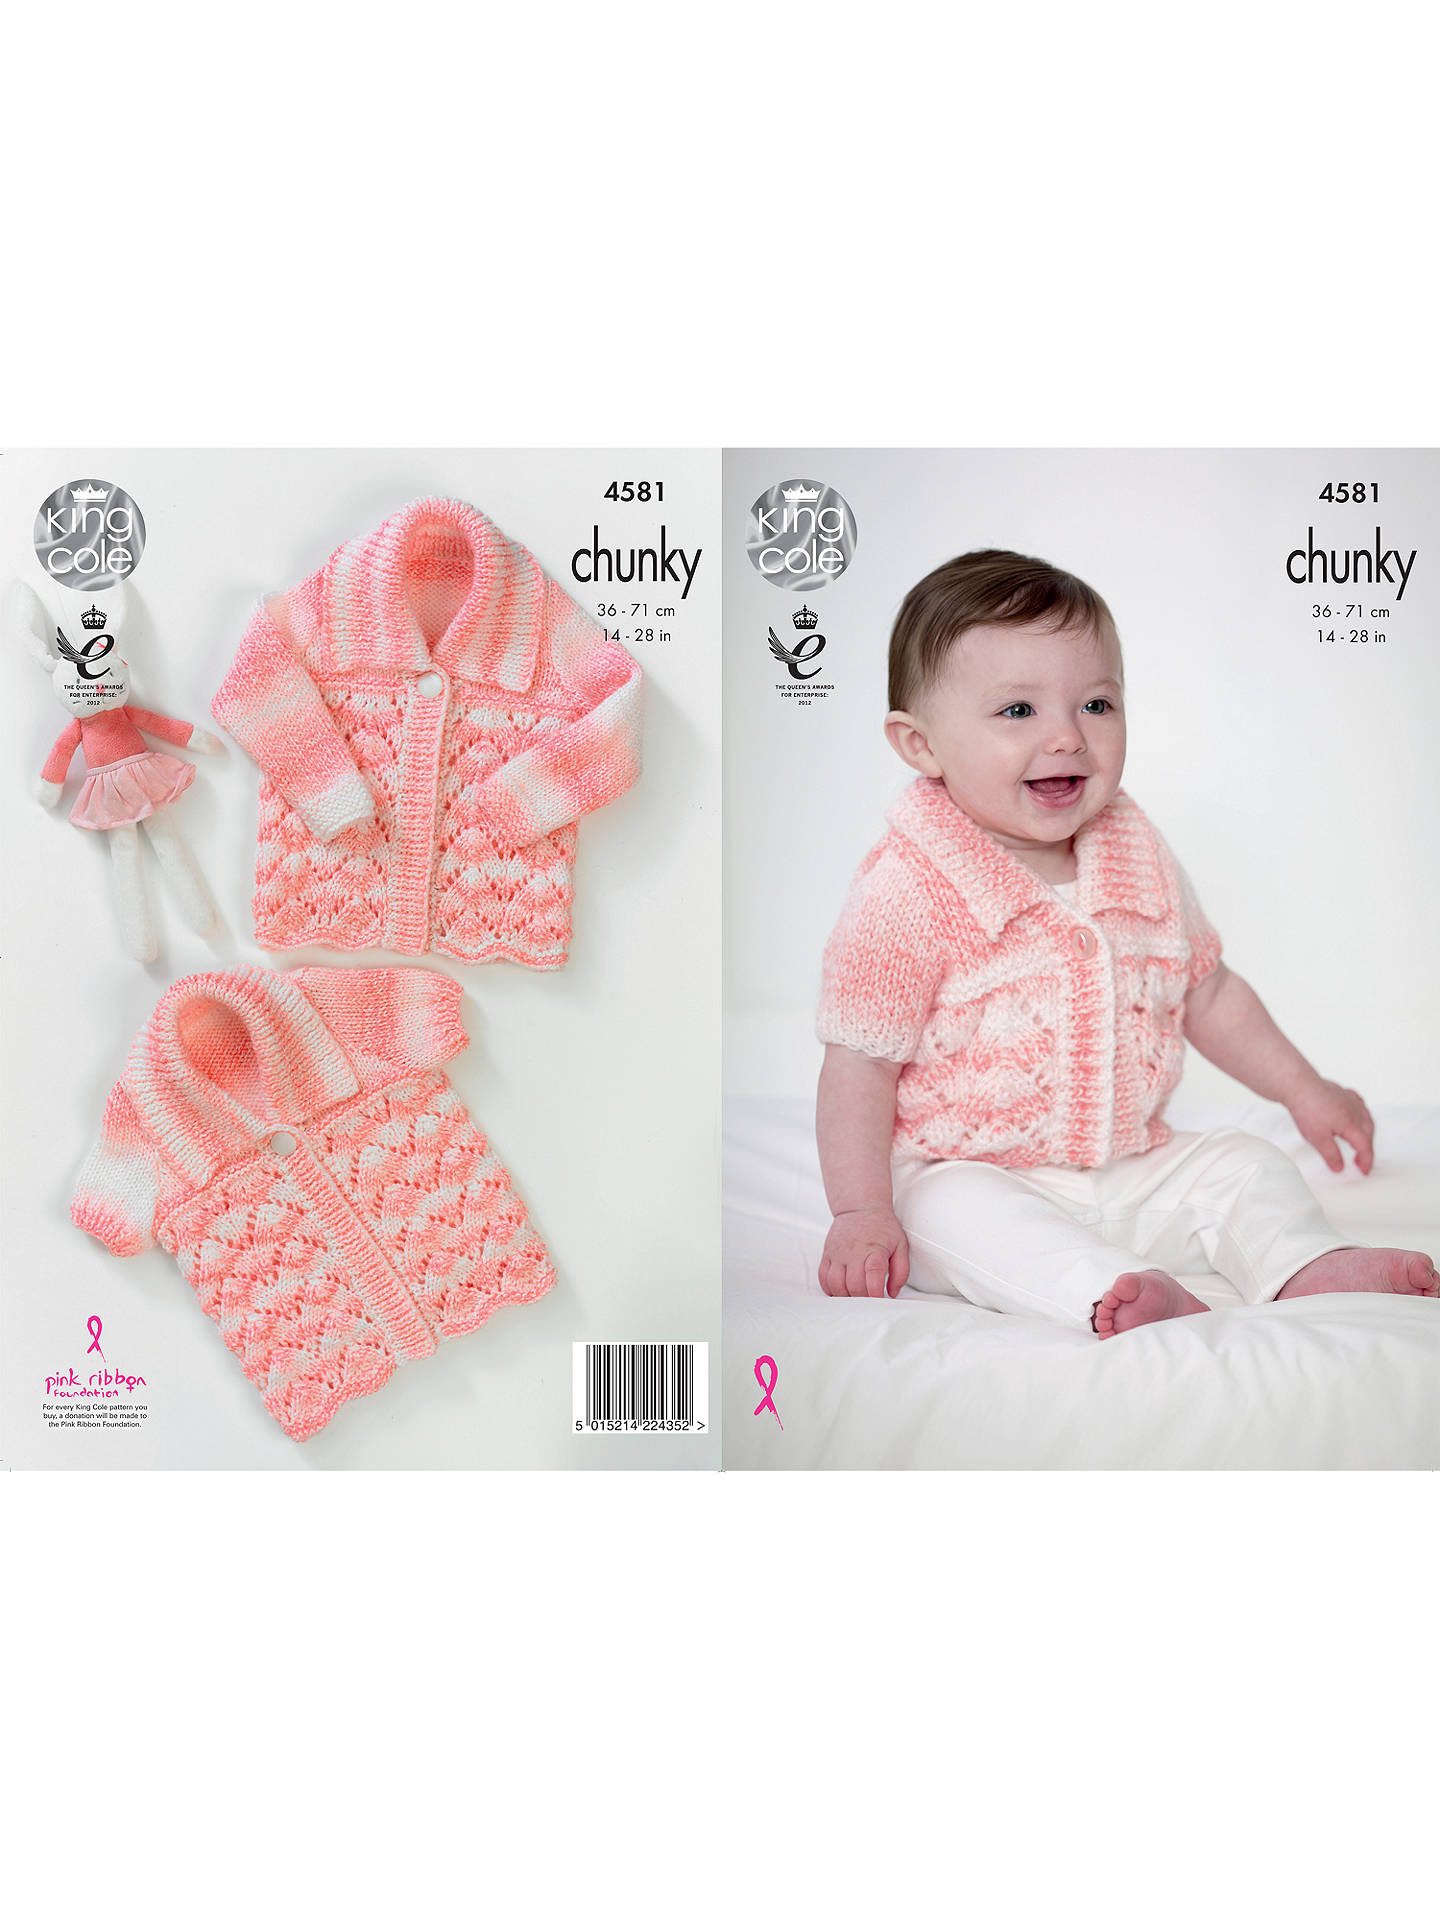 f147f19a7e1e Buy King Cole Comfort Chunky Baby Cardigan Knitting Pattern